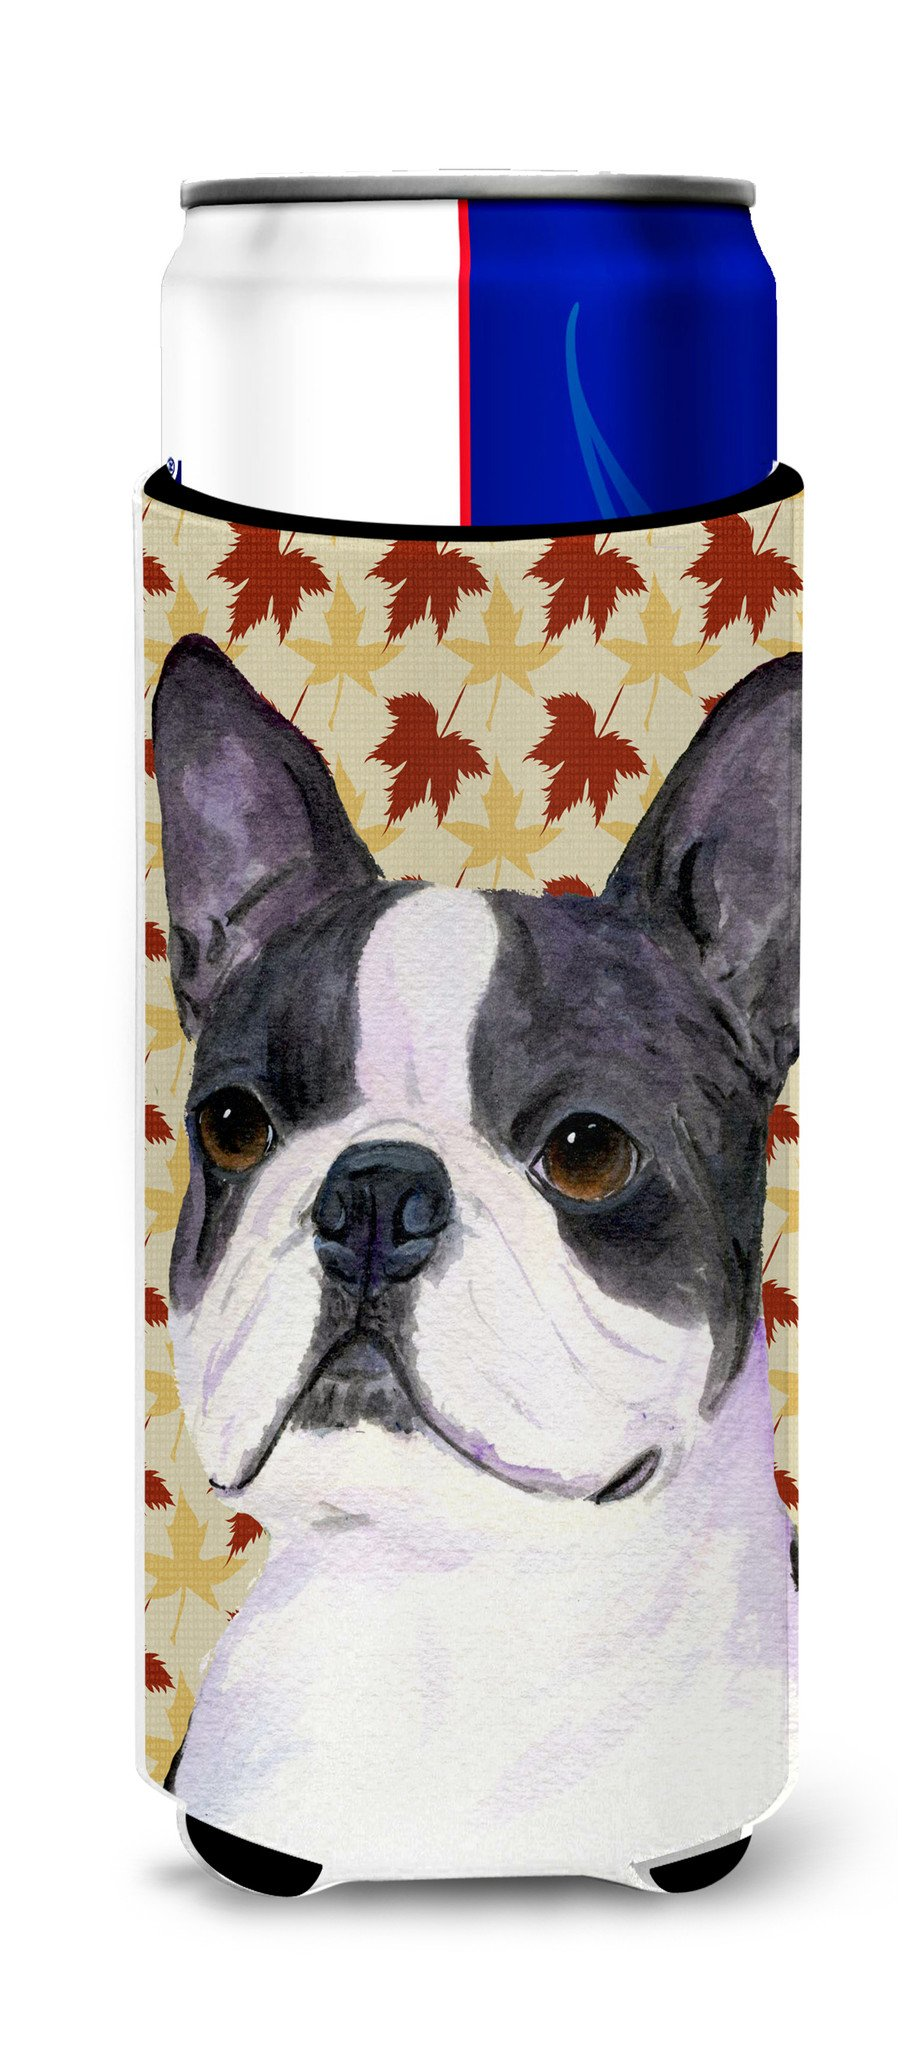 Boston Terrier Fall Leaves Portrait Ultra Beverage Insulators for slim cans SS4340MUK by Caroline's Treasures